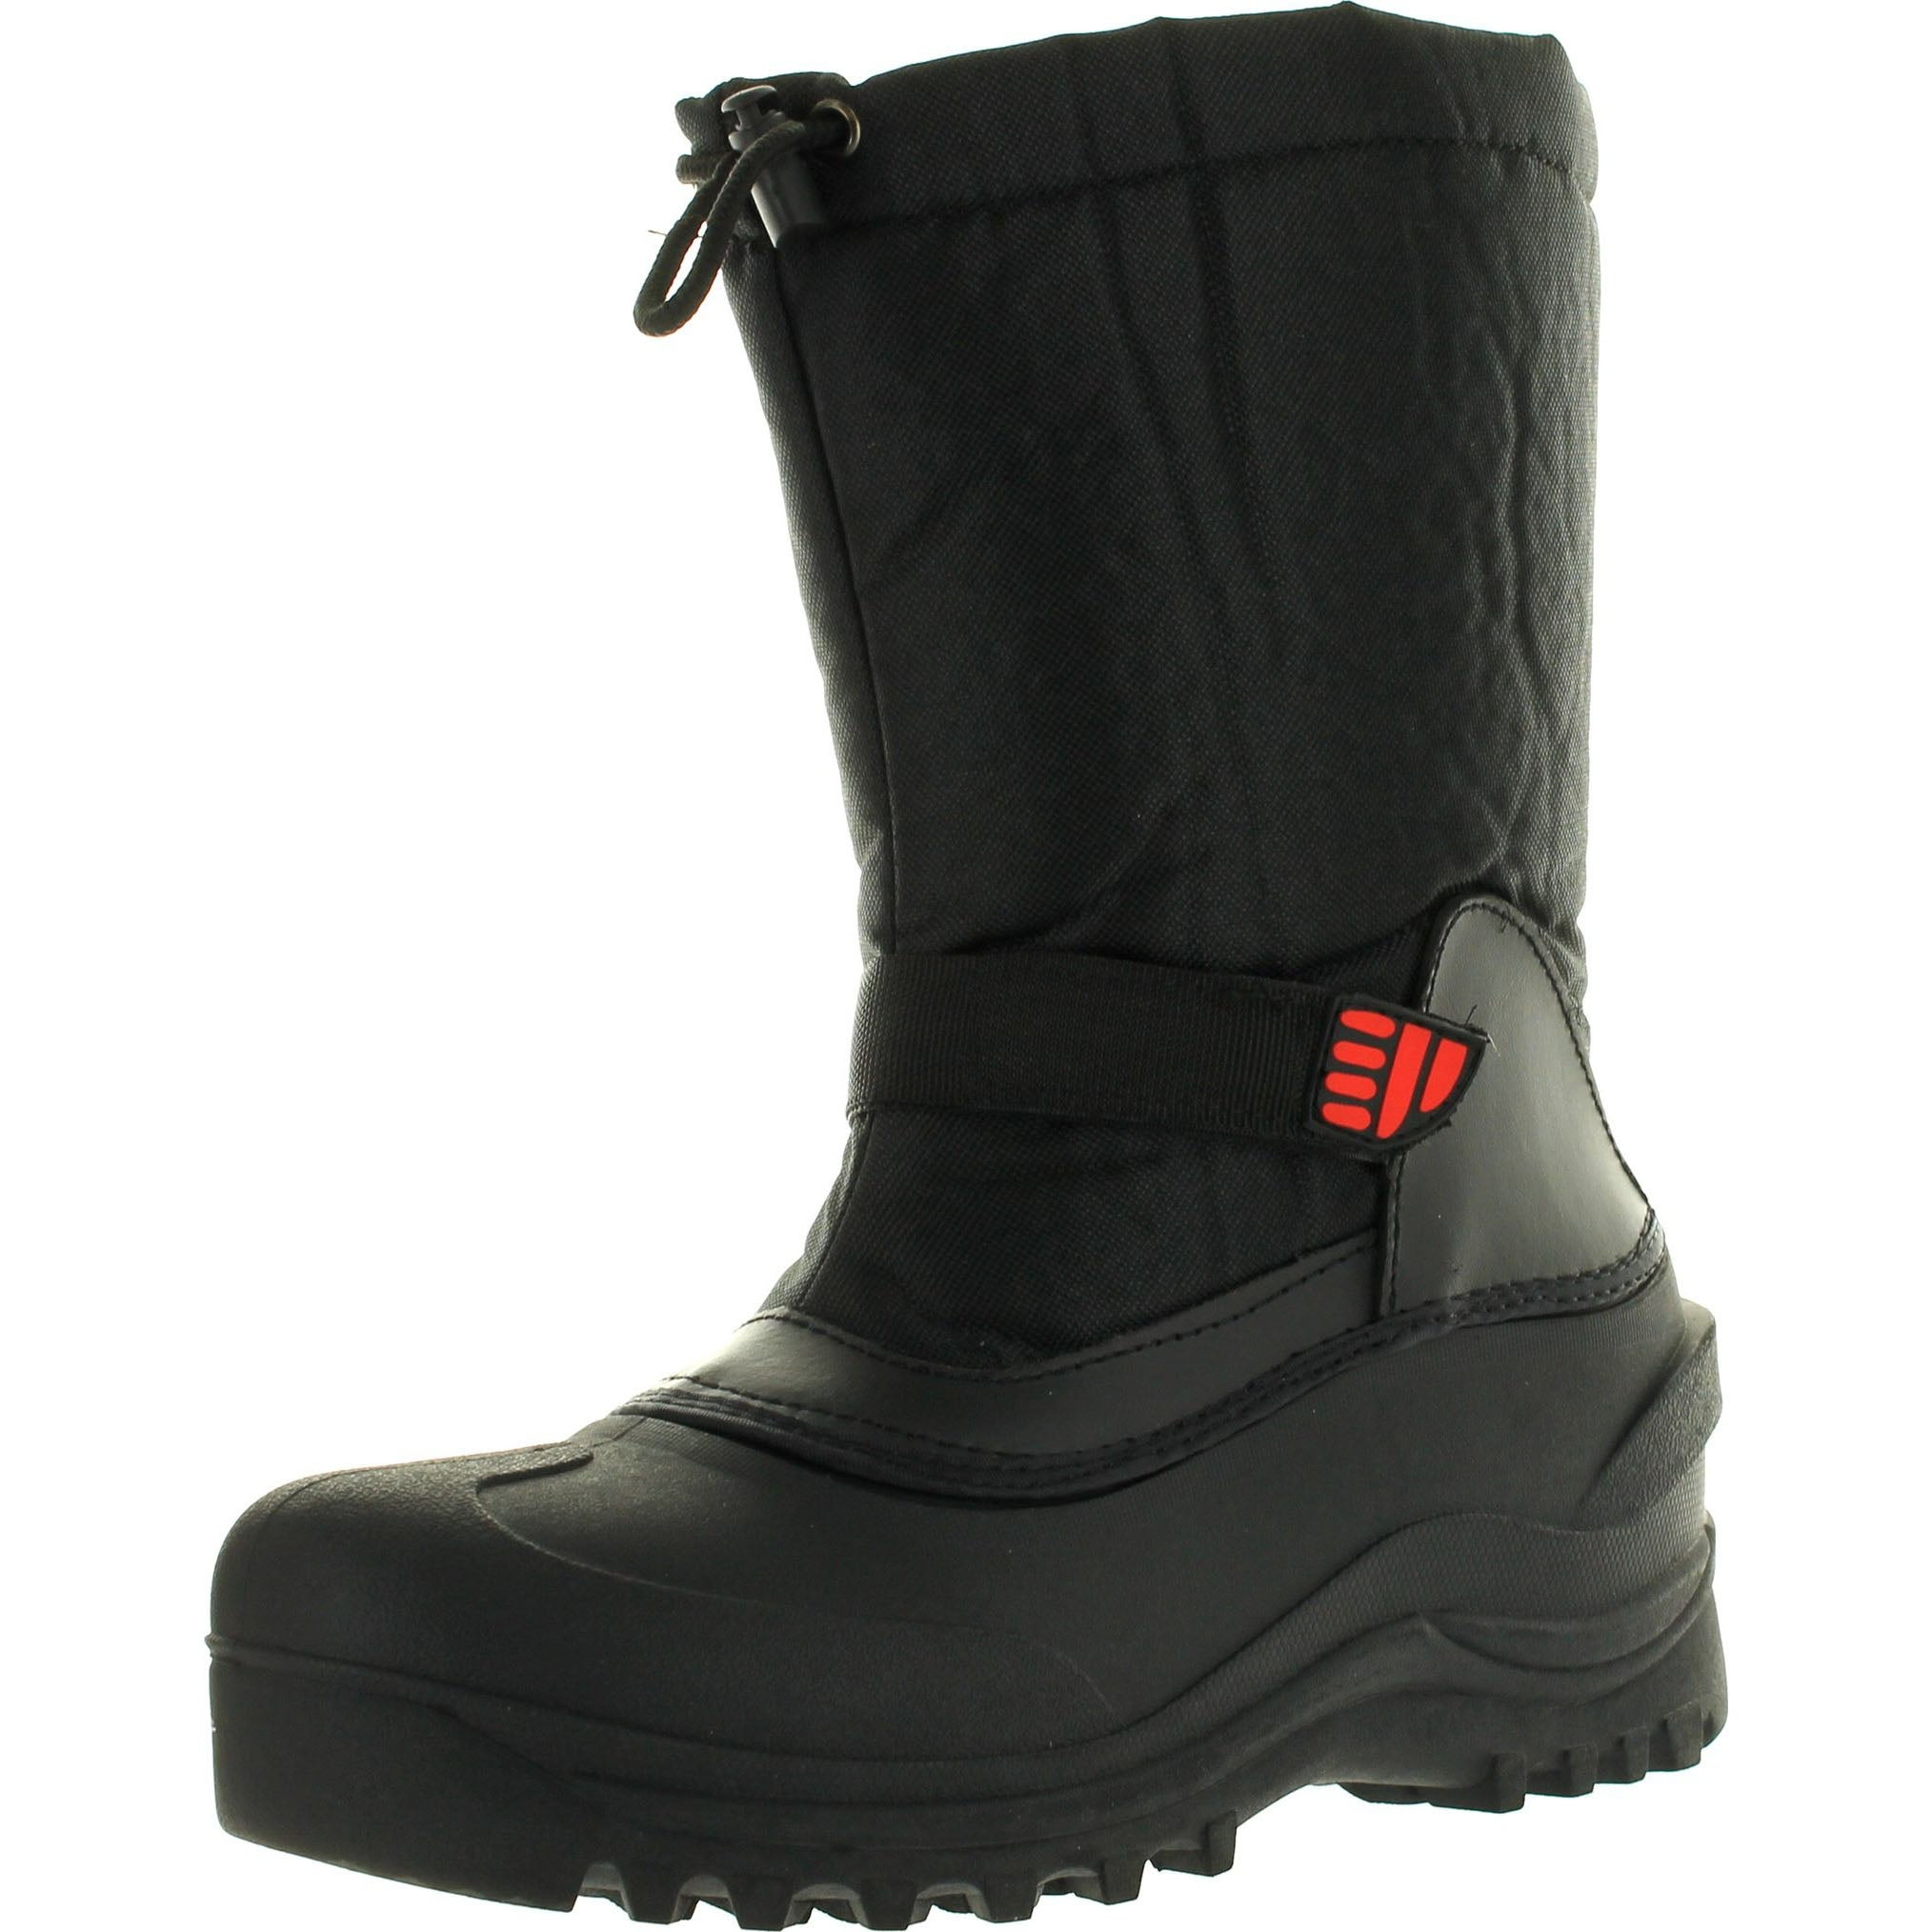 Climate X Mens Ysc5 Snow Boot,Charcoal,11